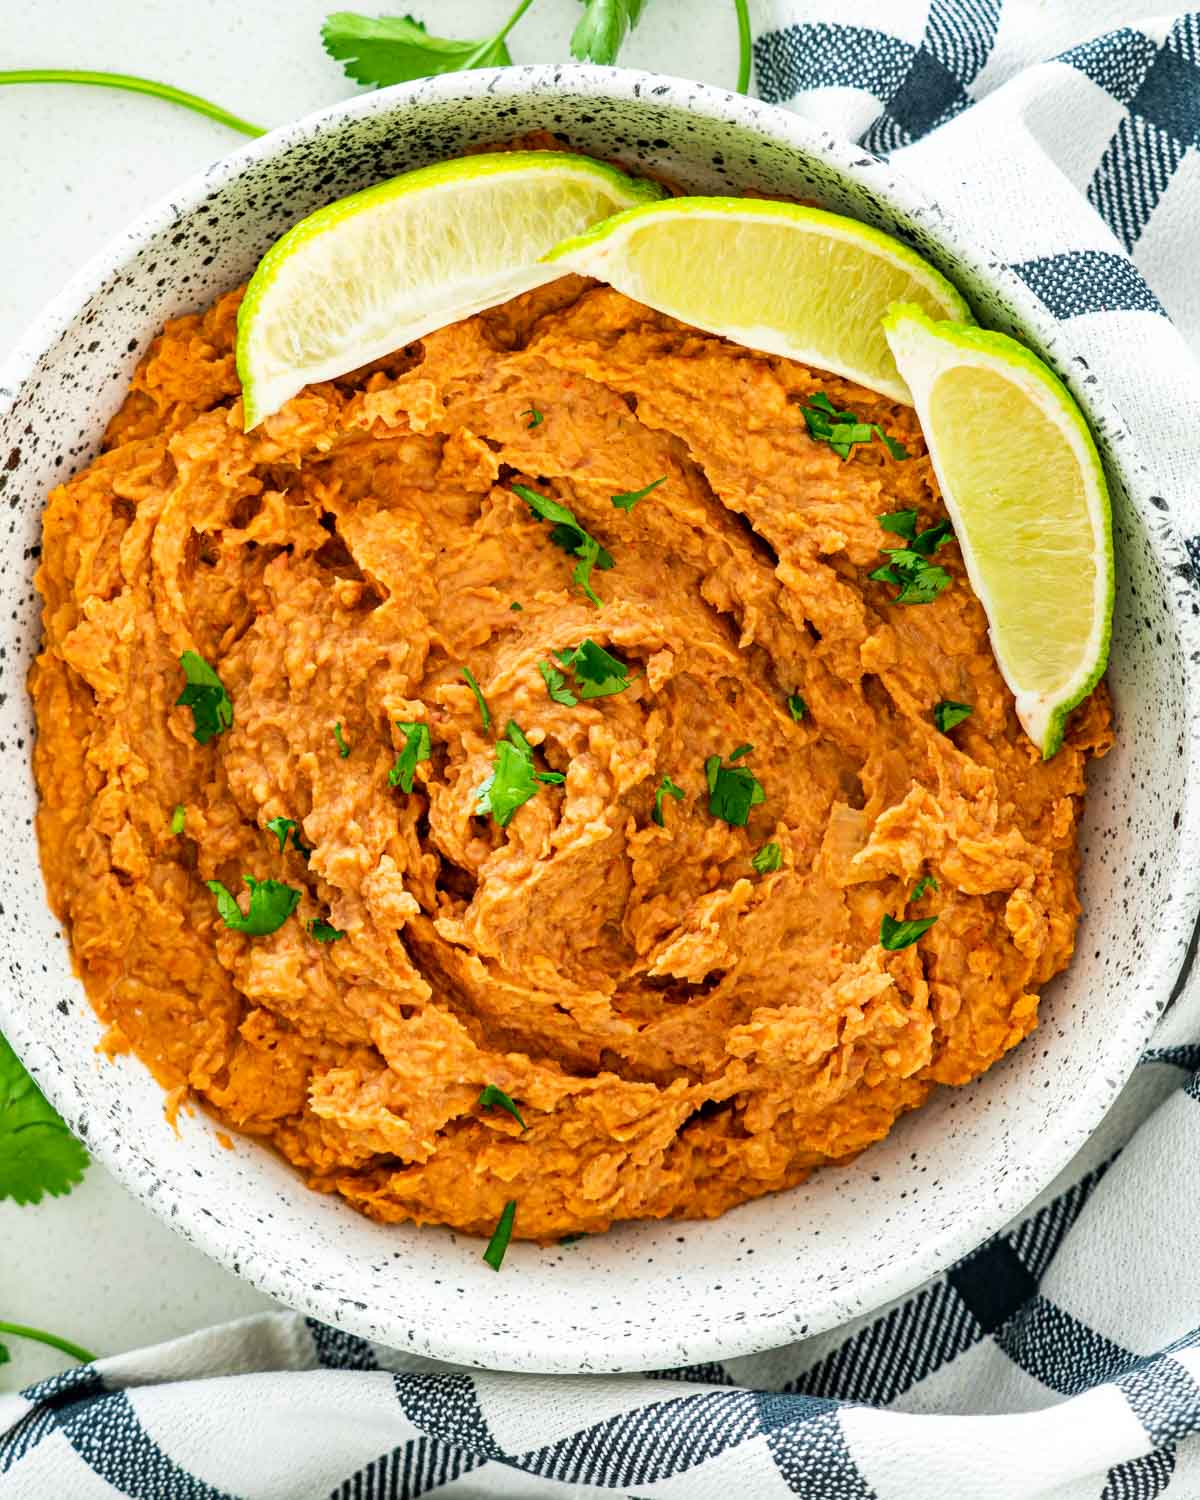 overhead shot of refried beans in a plate garnished with lime wedges and cilantro.